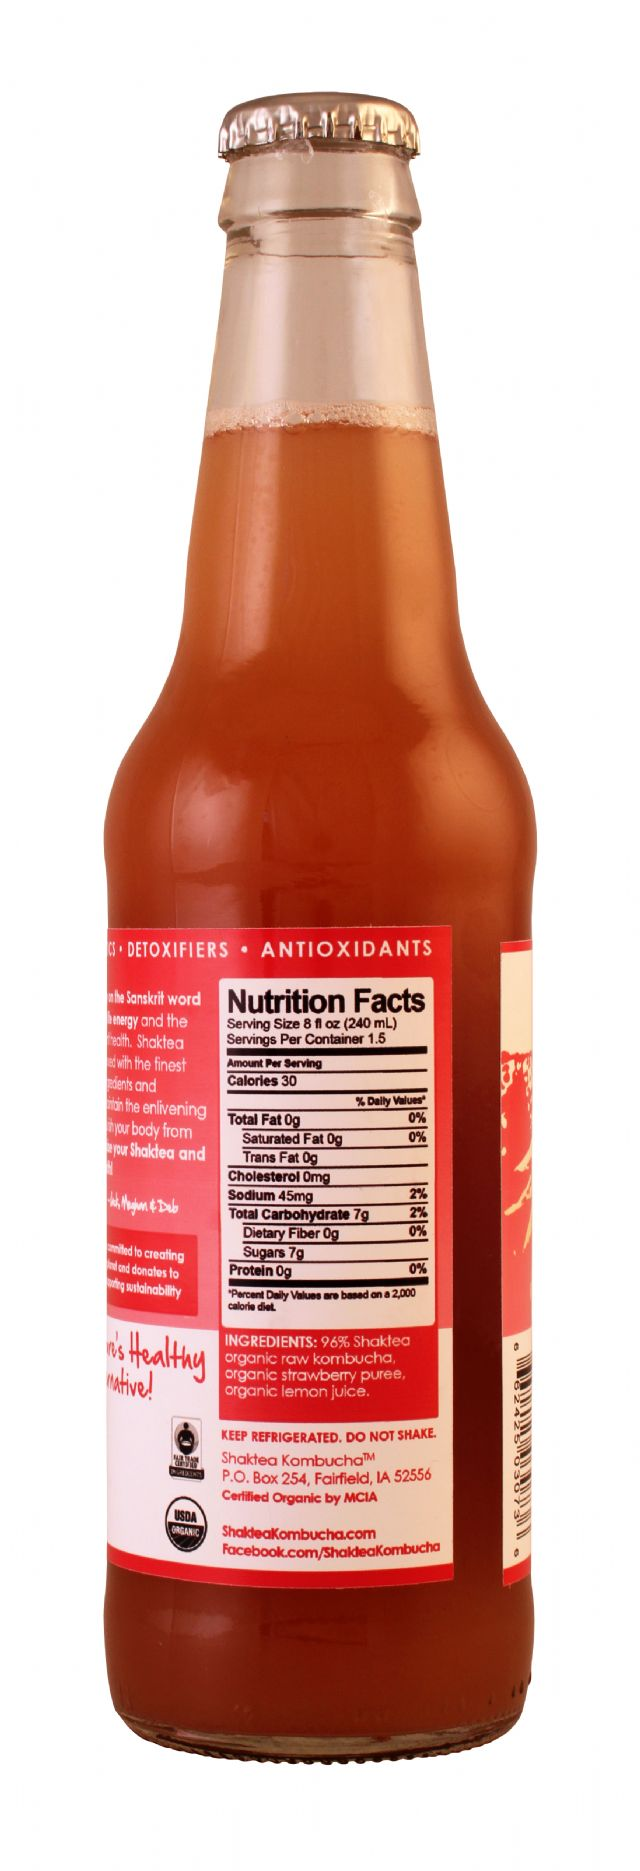 Shaktea Kombucha: ShakteaKom Strawberry Facts